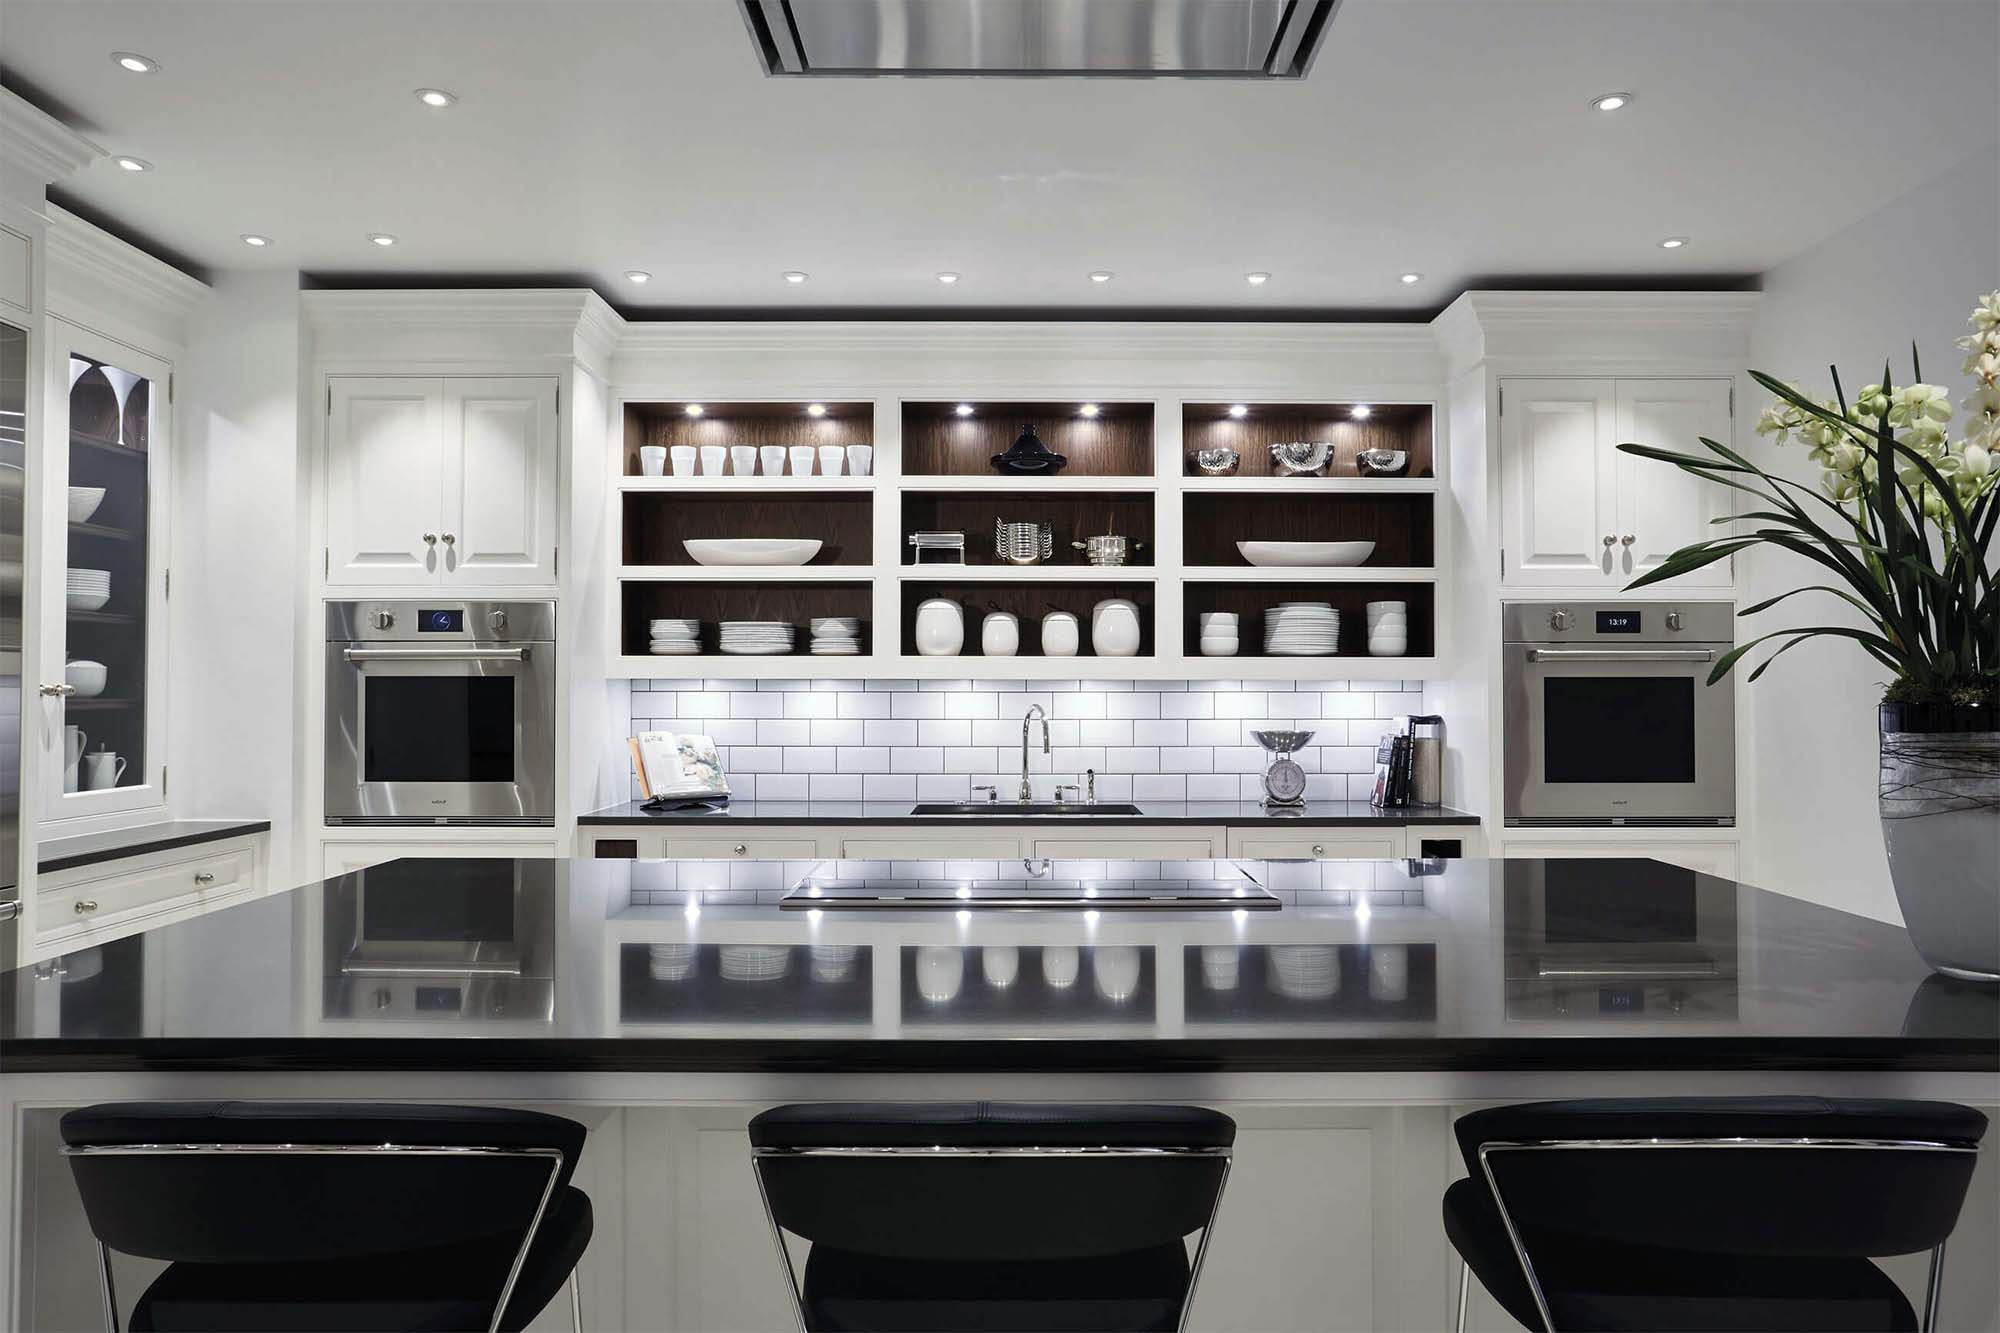 high end appliances in a luxury white kitchen with black quartz countertops